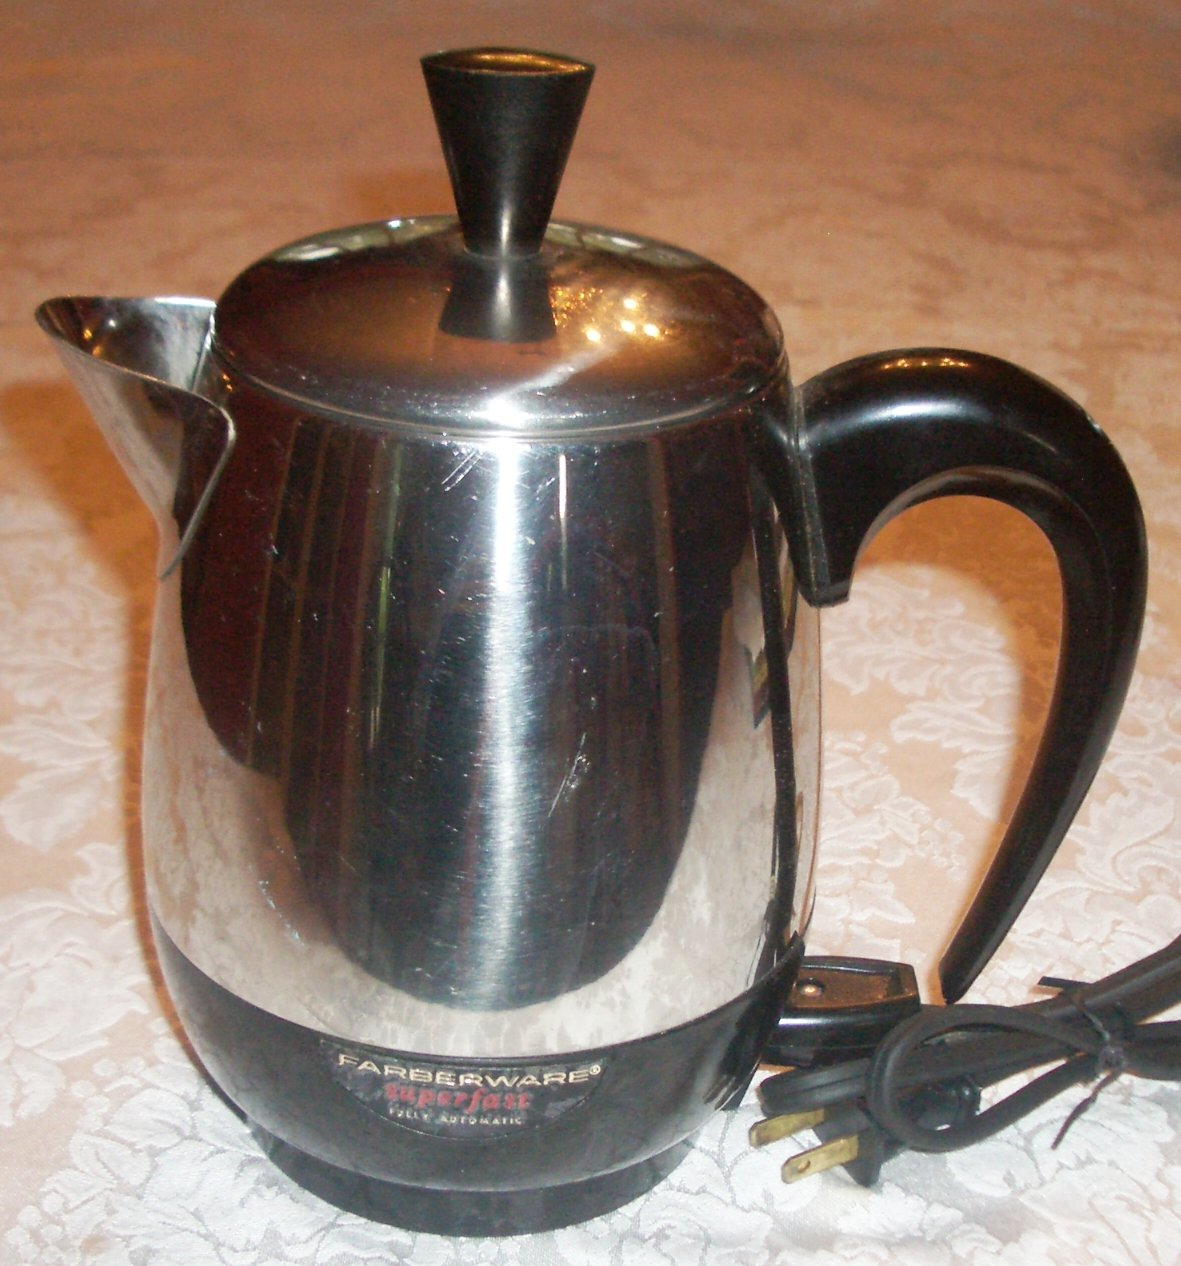 Coffee Maker With Percolator : Vintage Farberware 4 Cup Superfast Electric Coffee Pot Small Percolator Maker